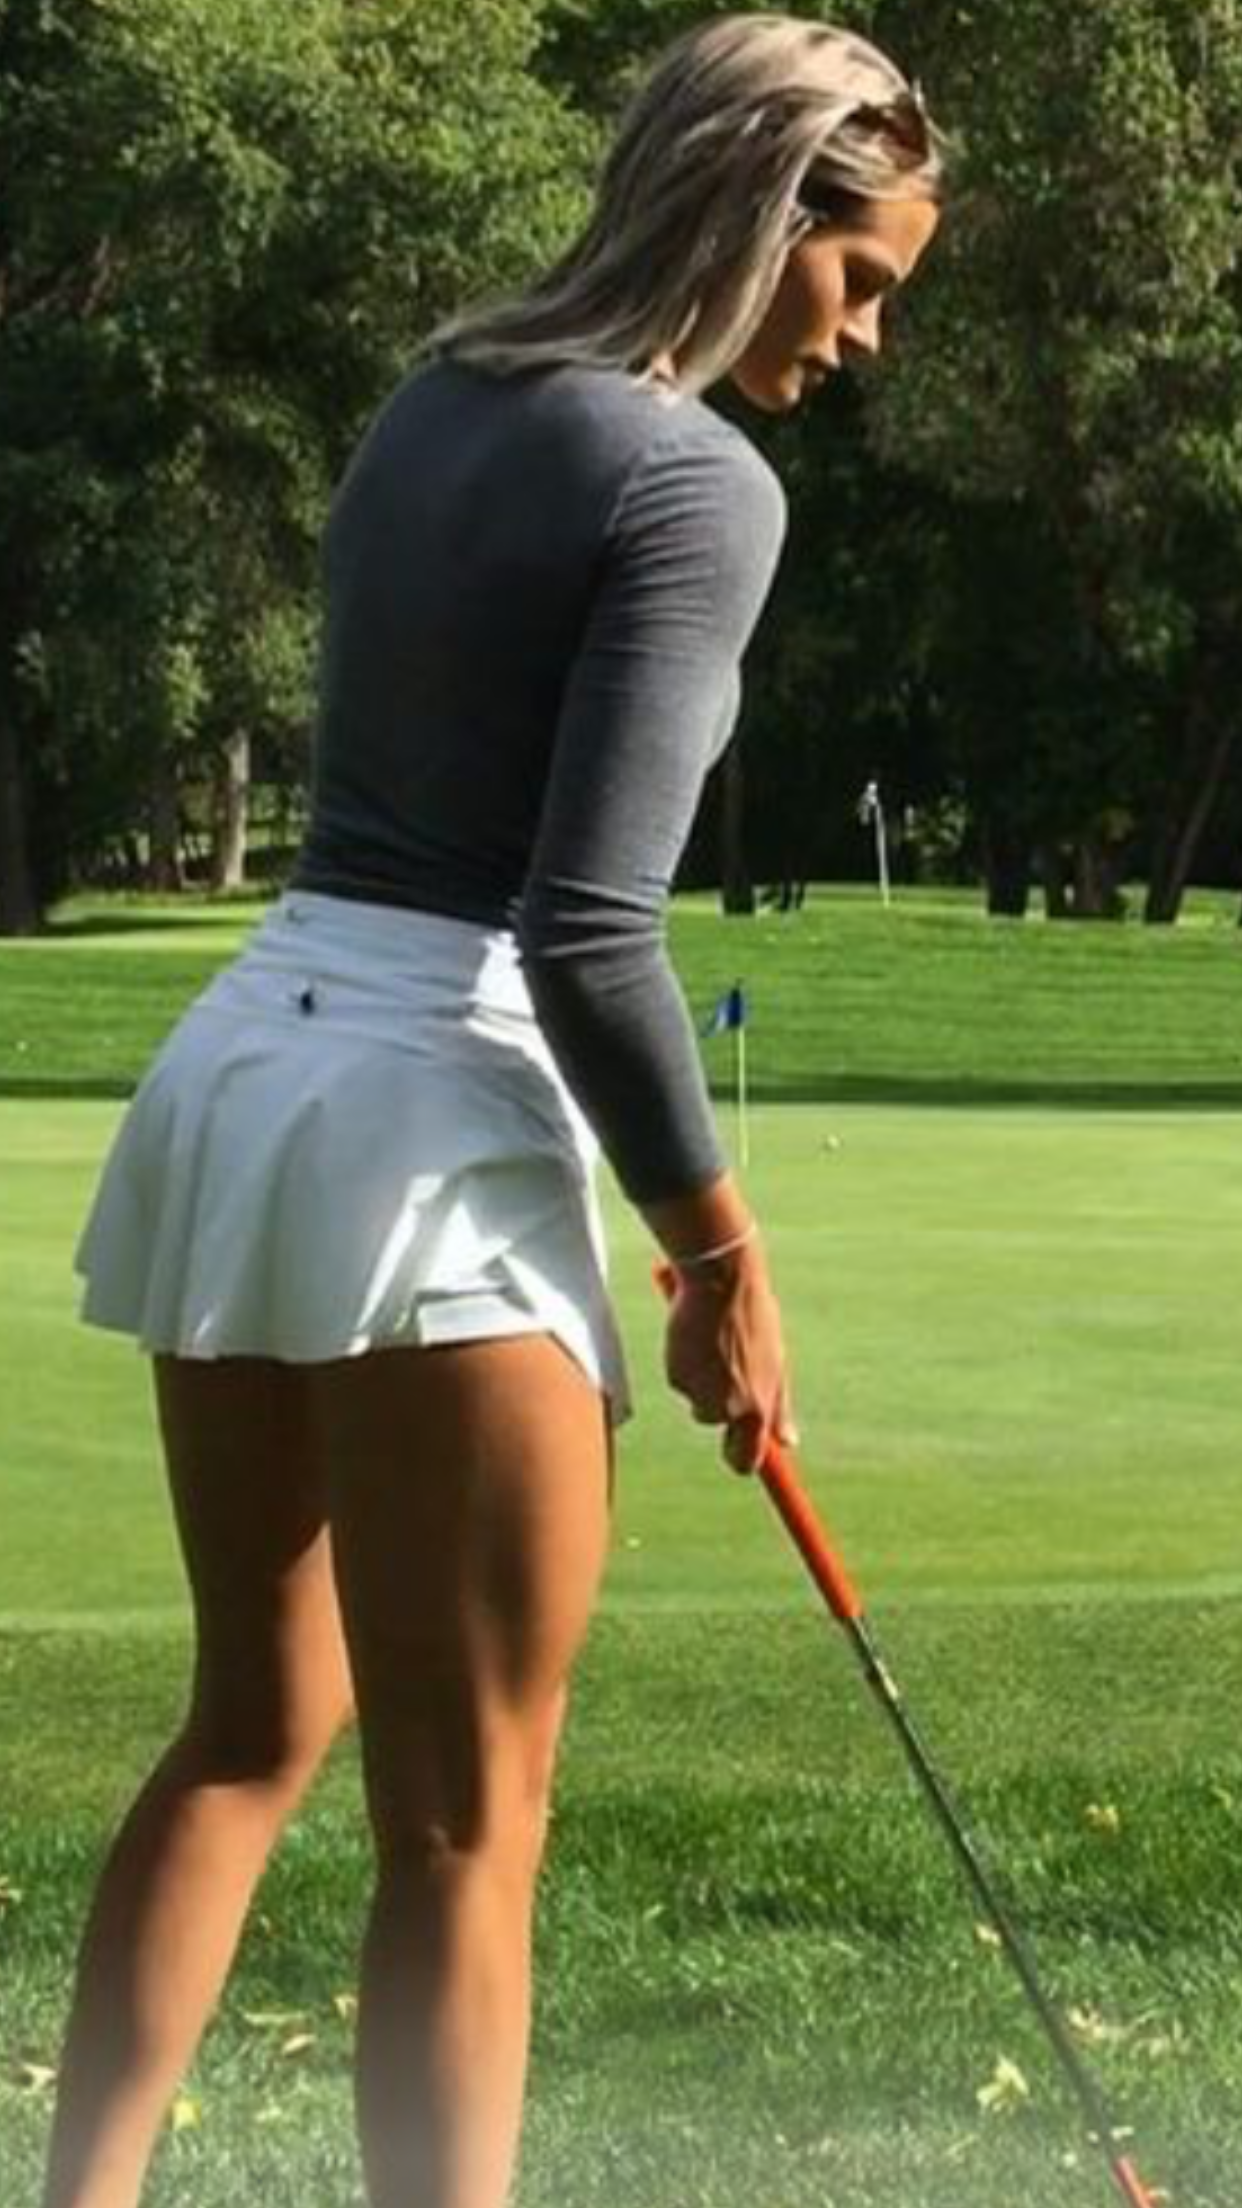 Final, Sexy golf women pictures necessary phrase